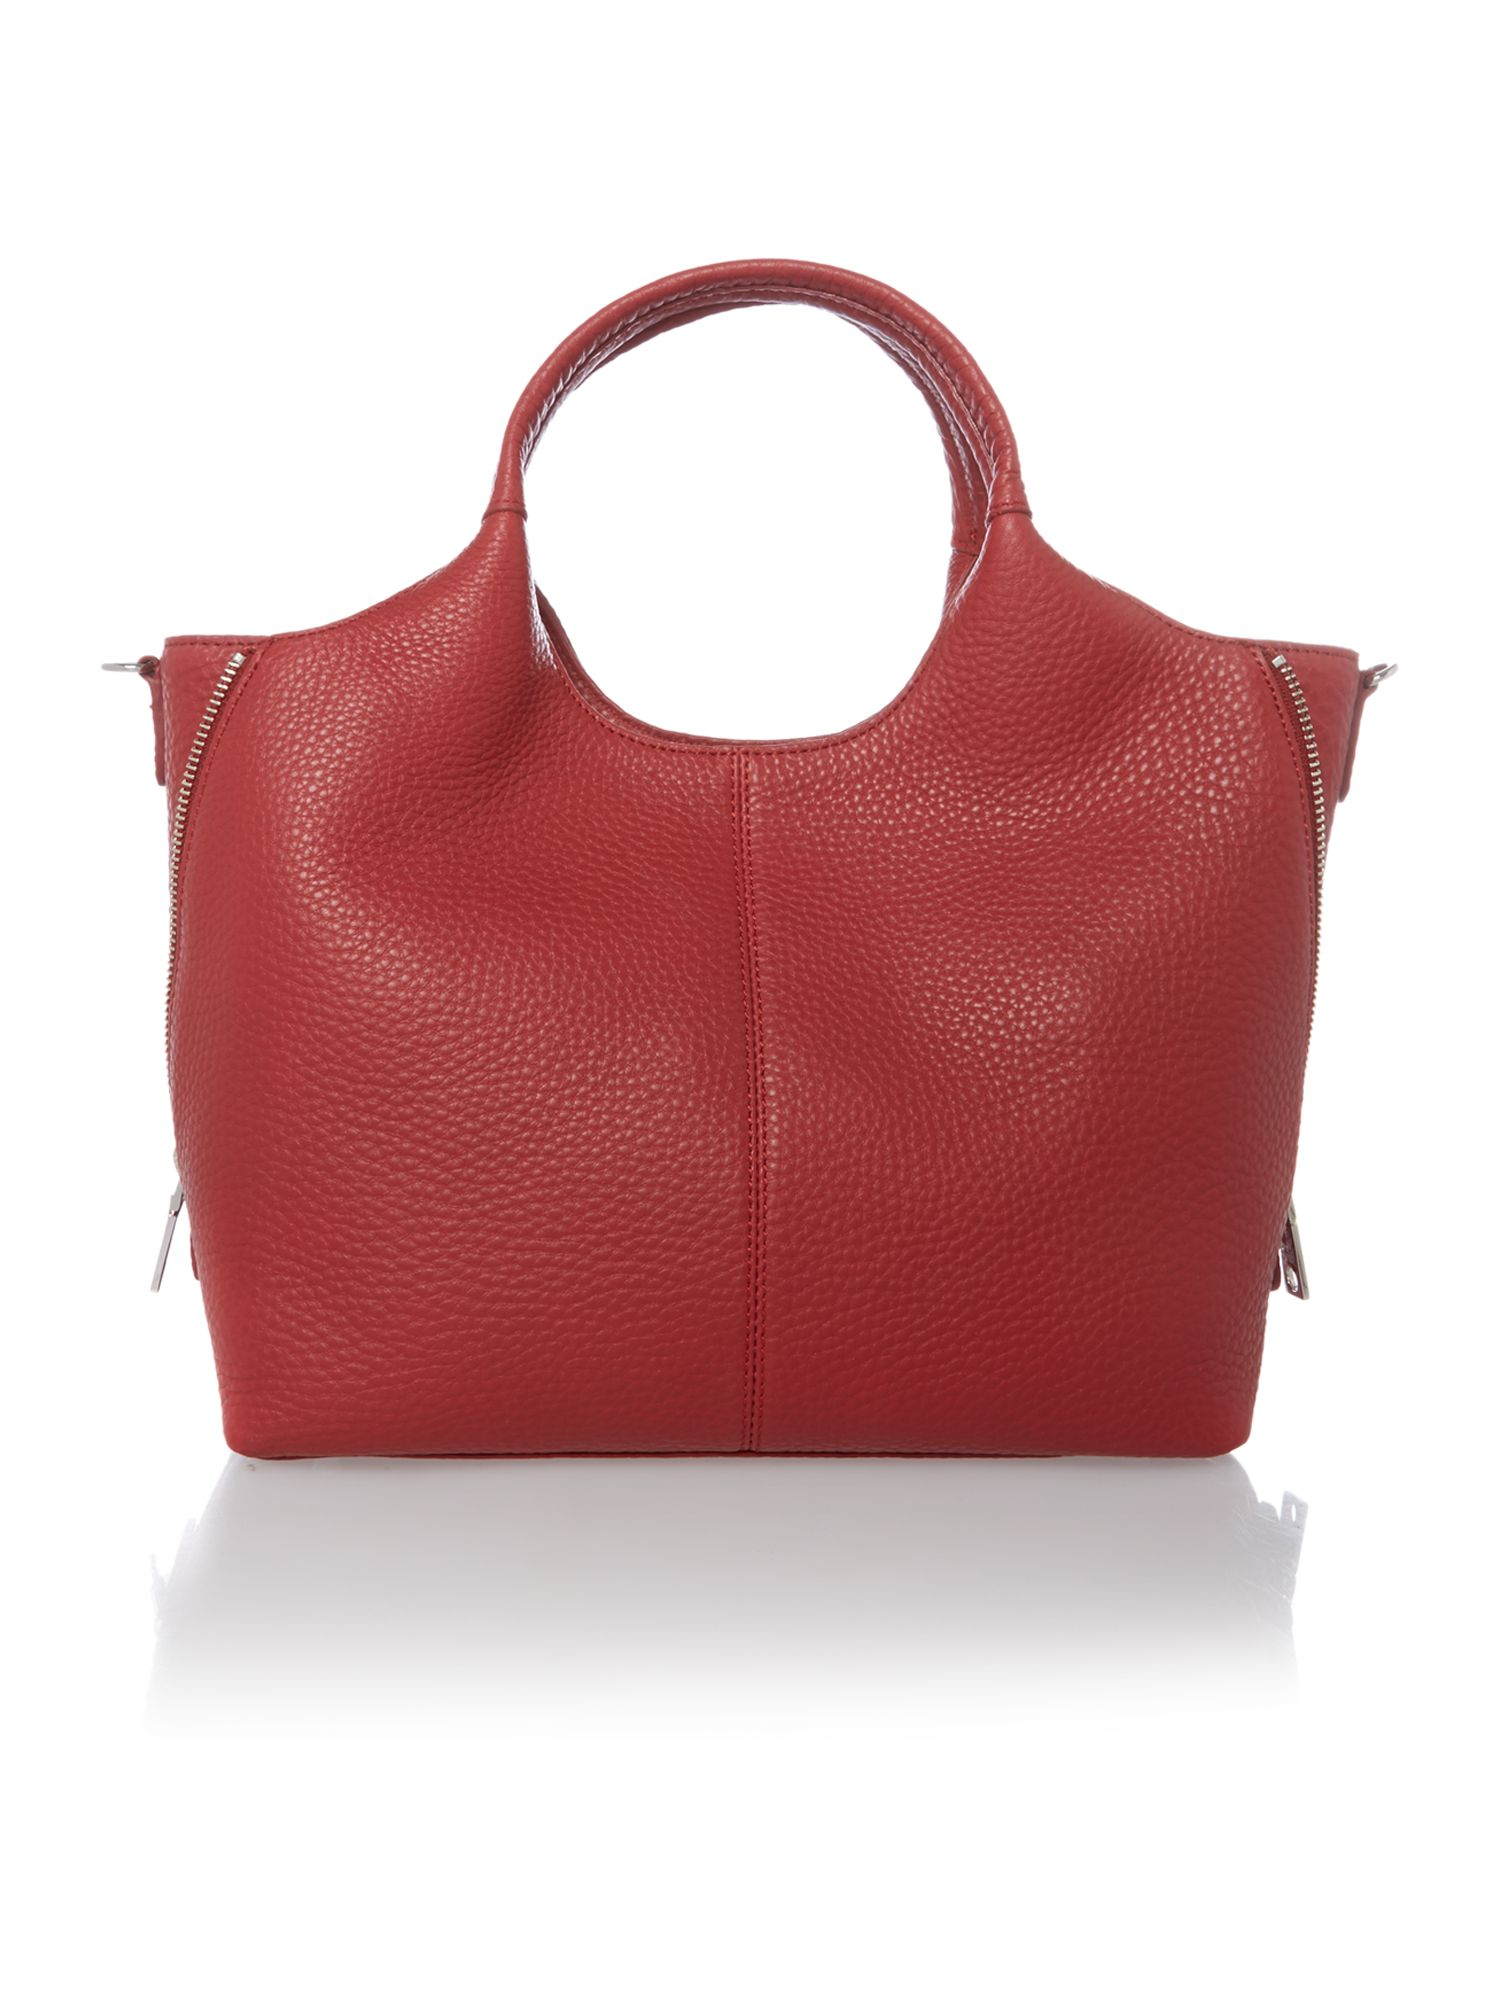 Tribeca soft red medium tote bag